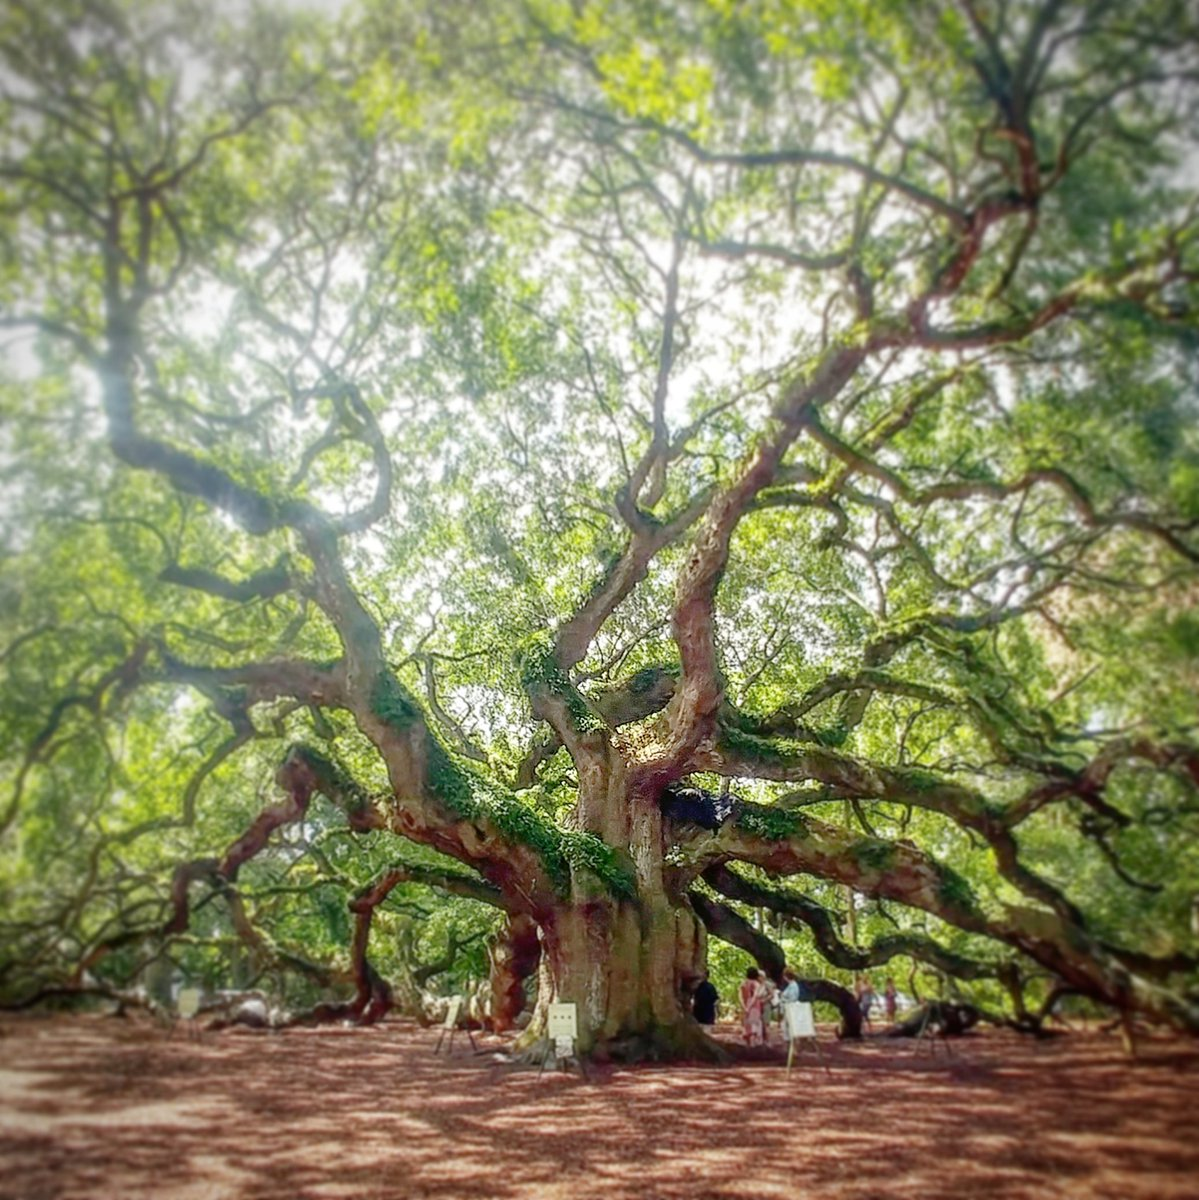 Angel Oak Oldest living organism this side of Mississippi.  Somewhere between 500 and 1500 years old. #tdad #tmom https://t.co/46A9fk0off